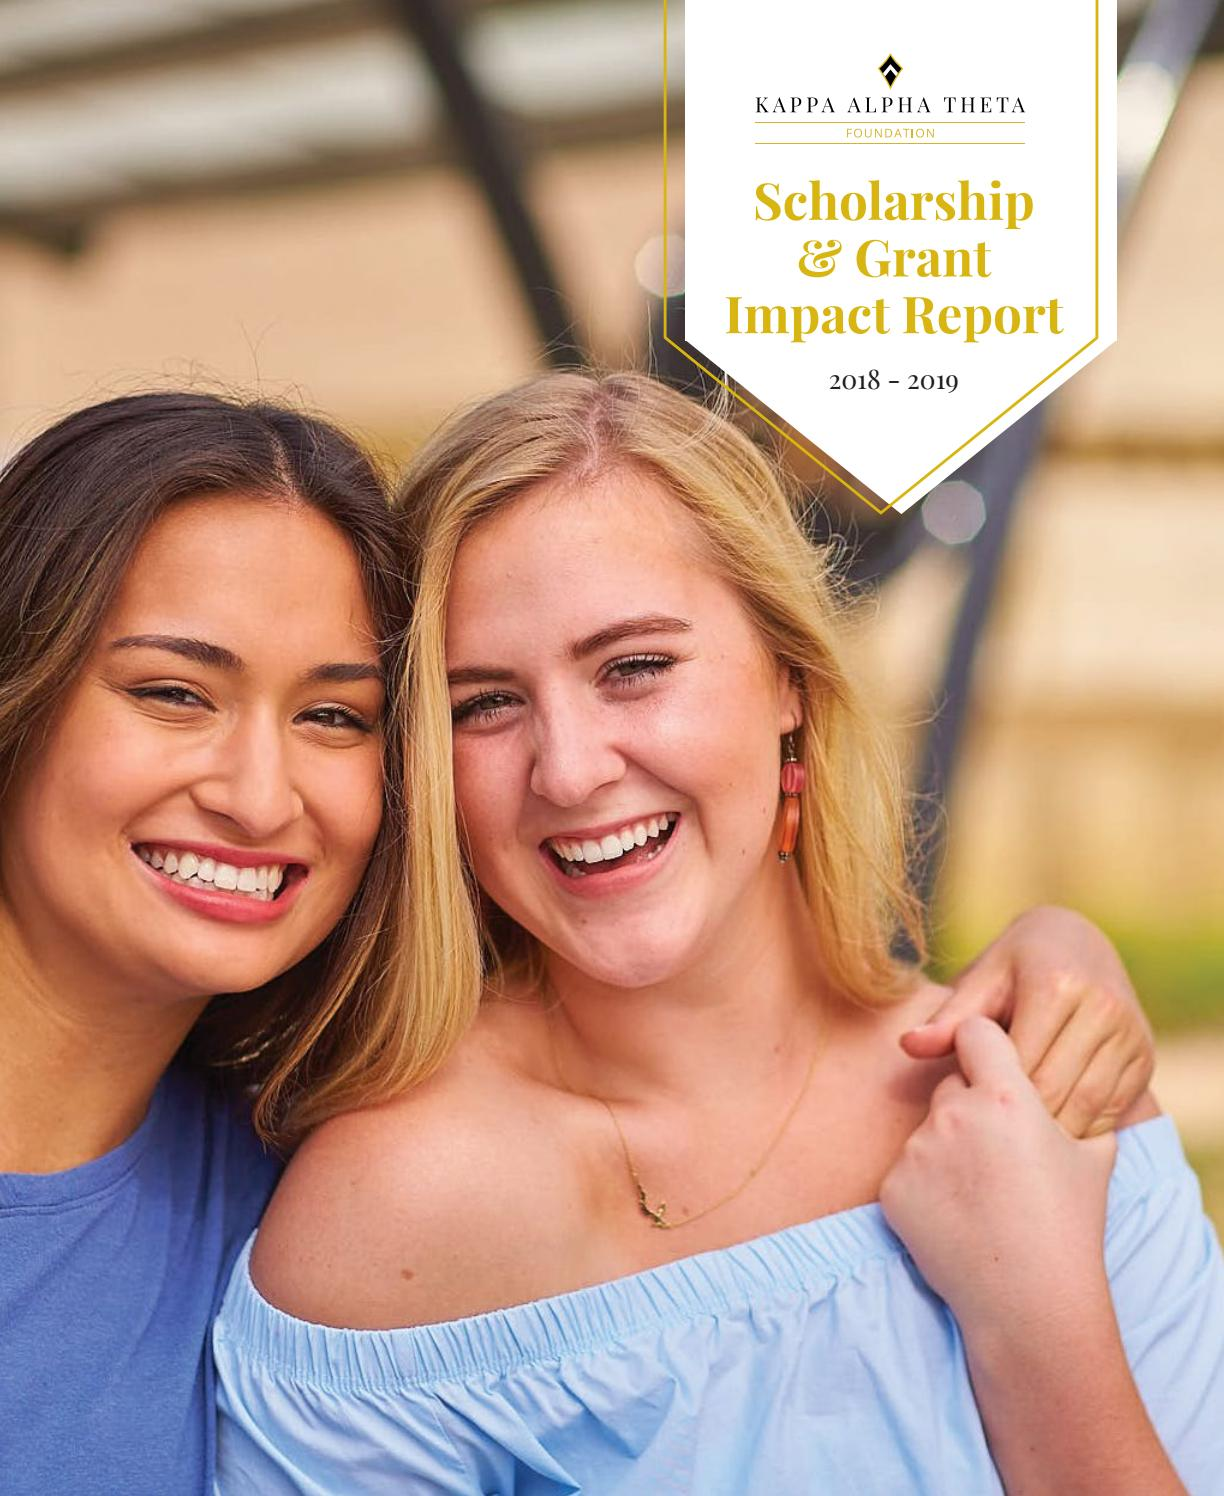 2018-2019 Scholarship & Grant Impact Report by Kappa Alpha